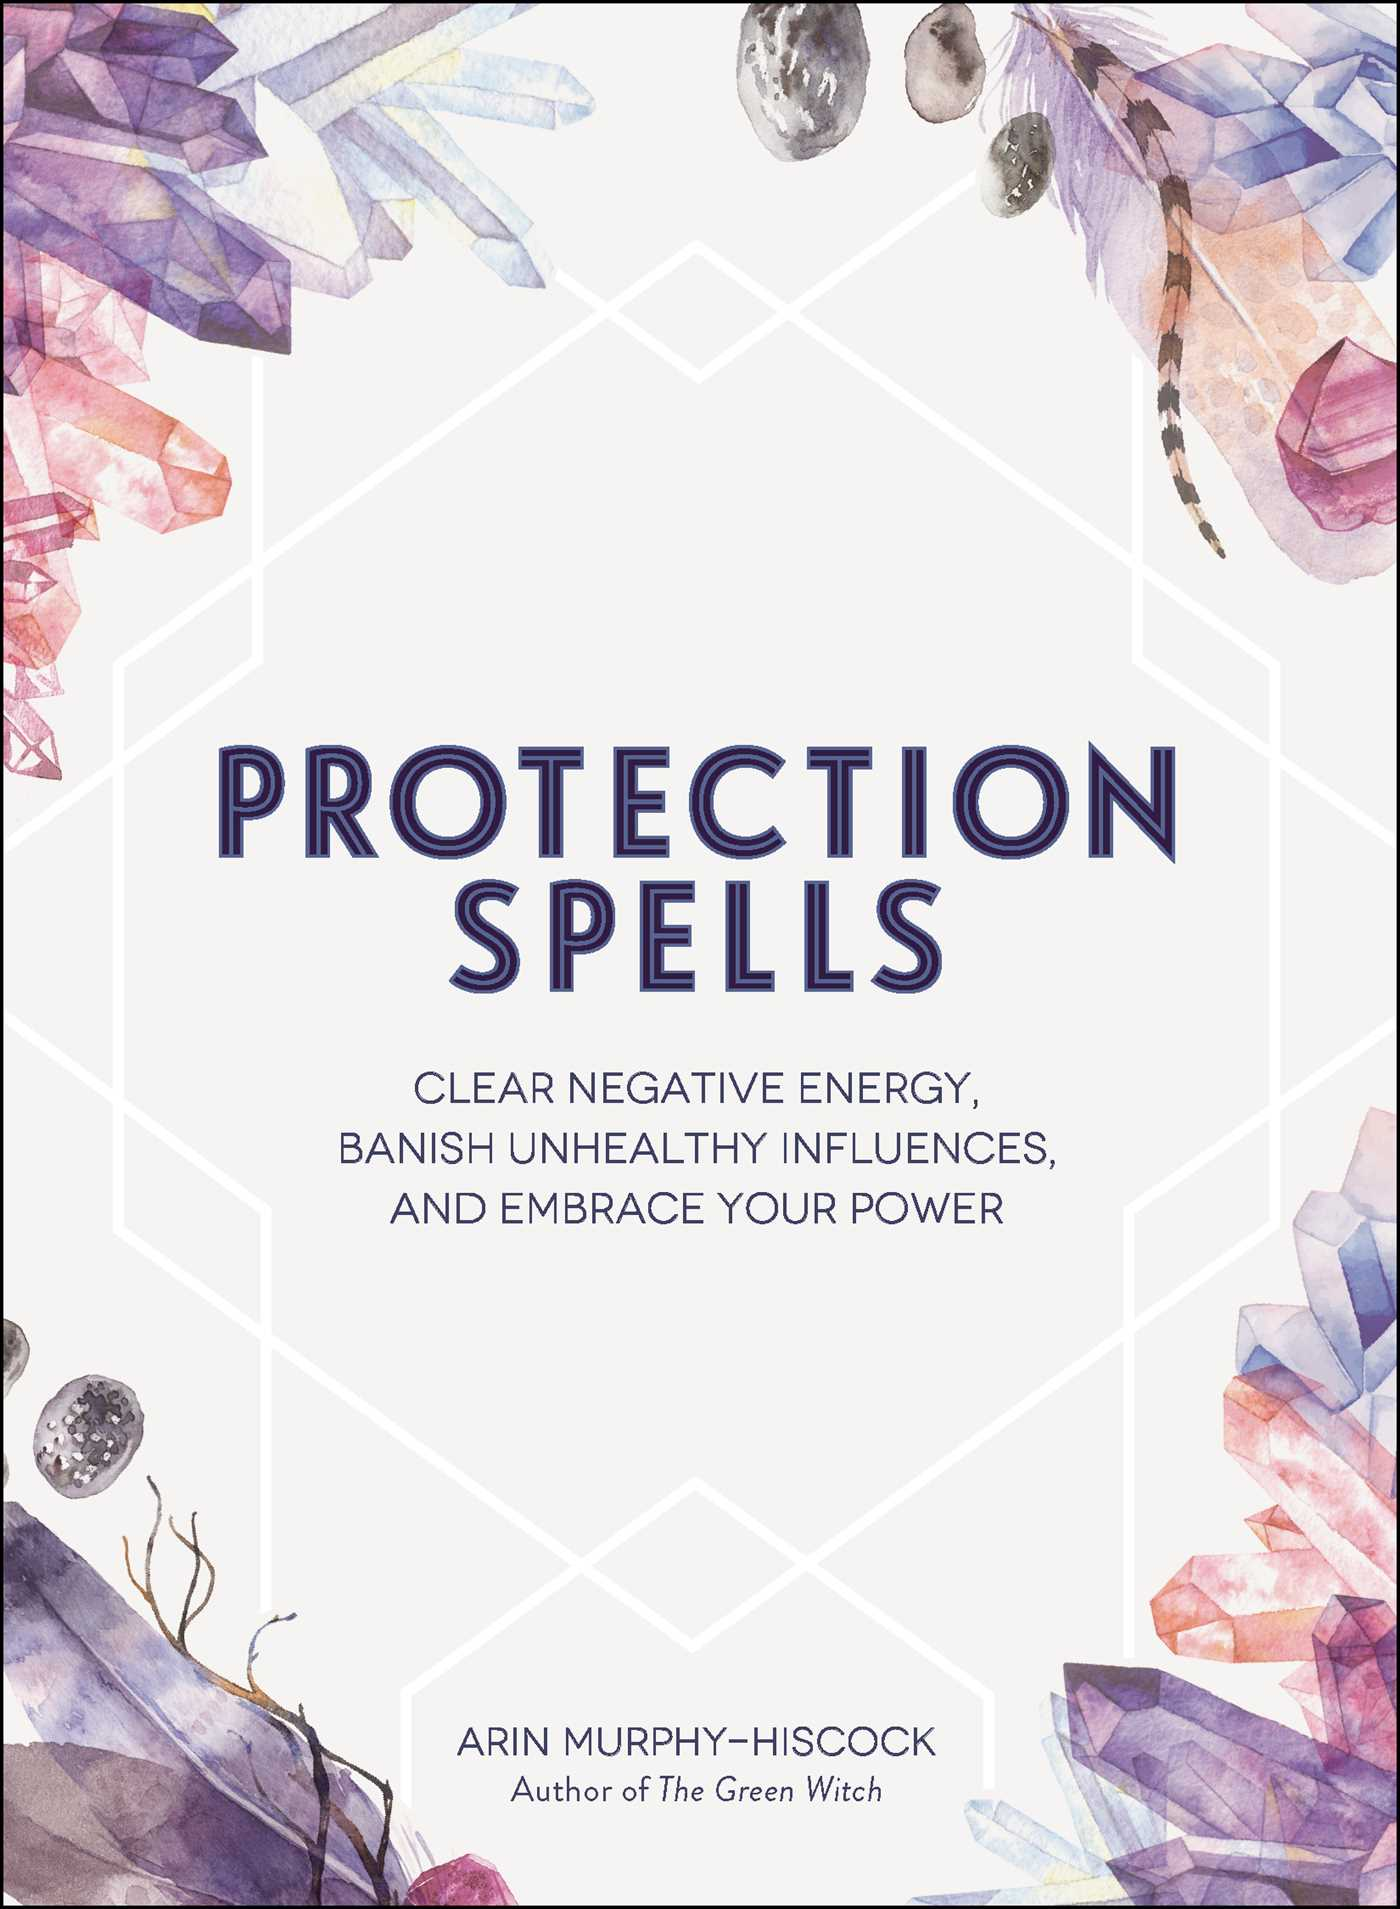 Protection spells 9781507208328 hr